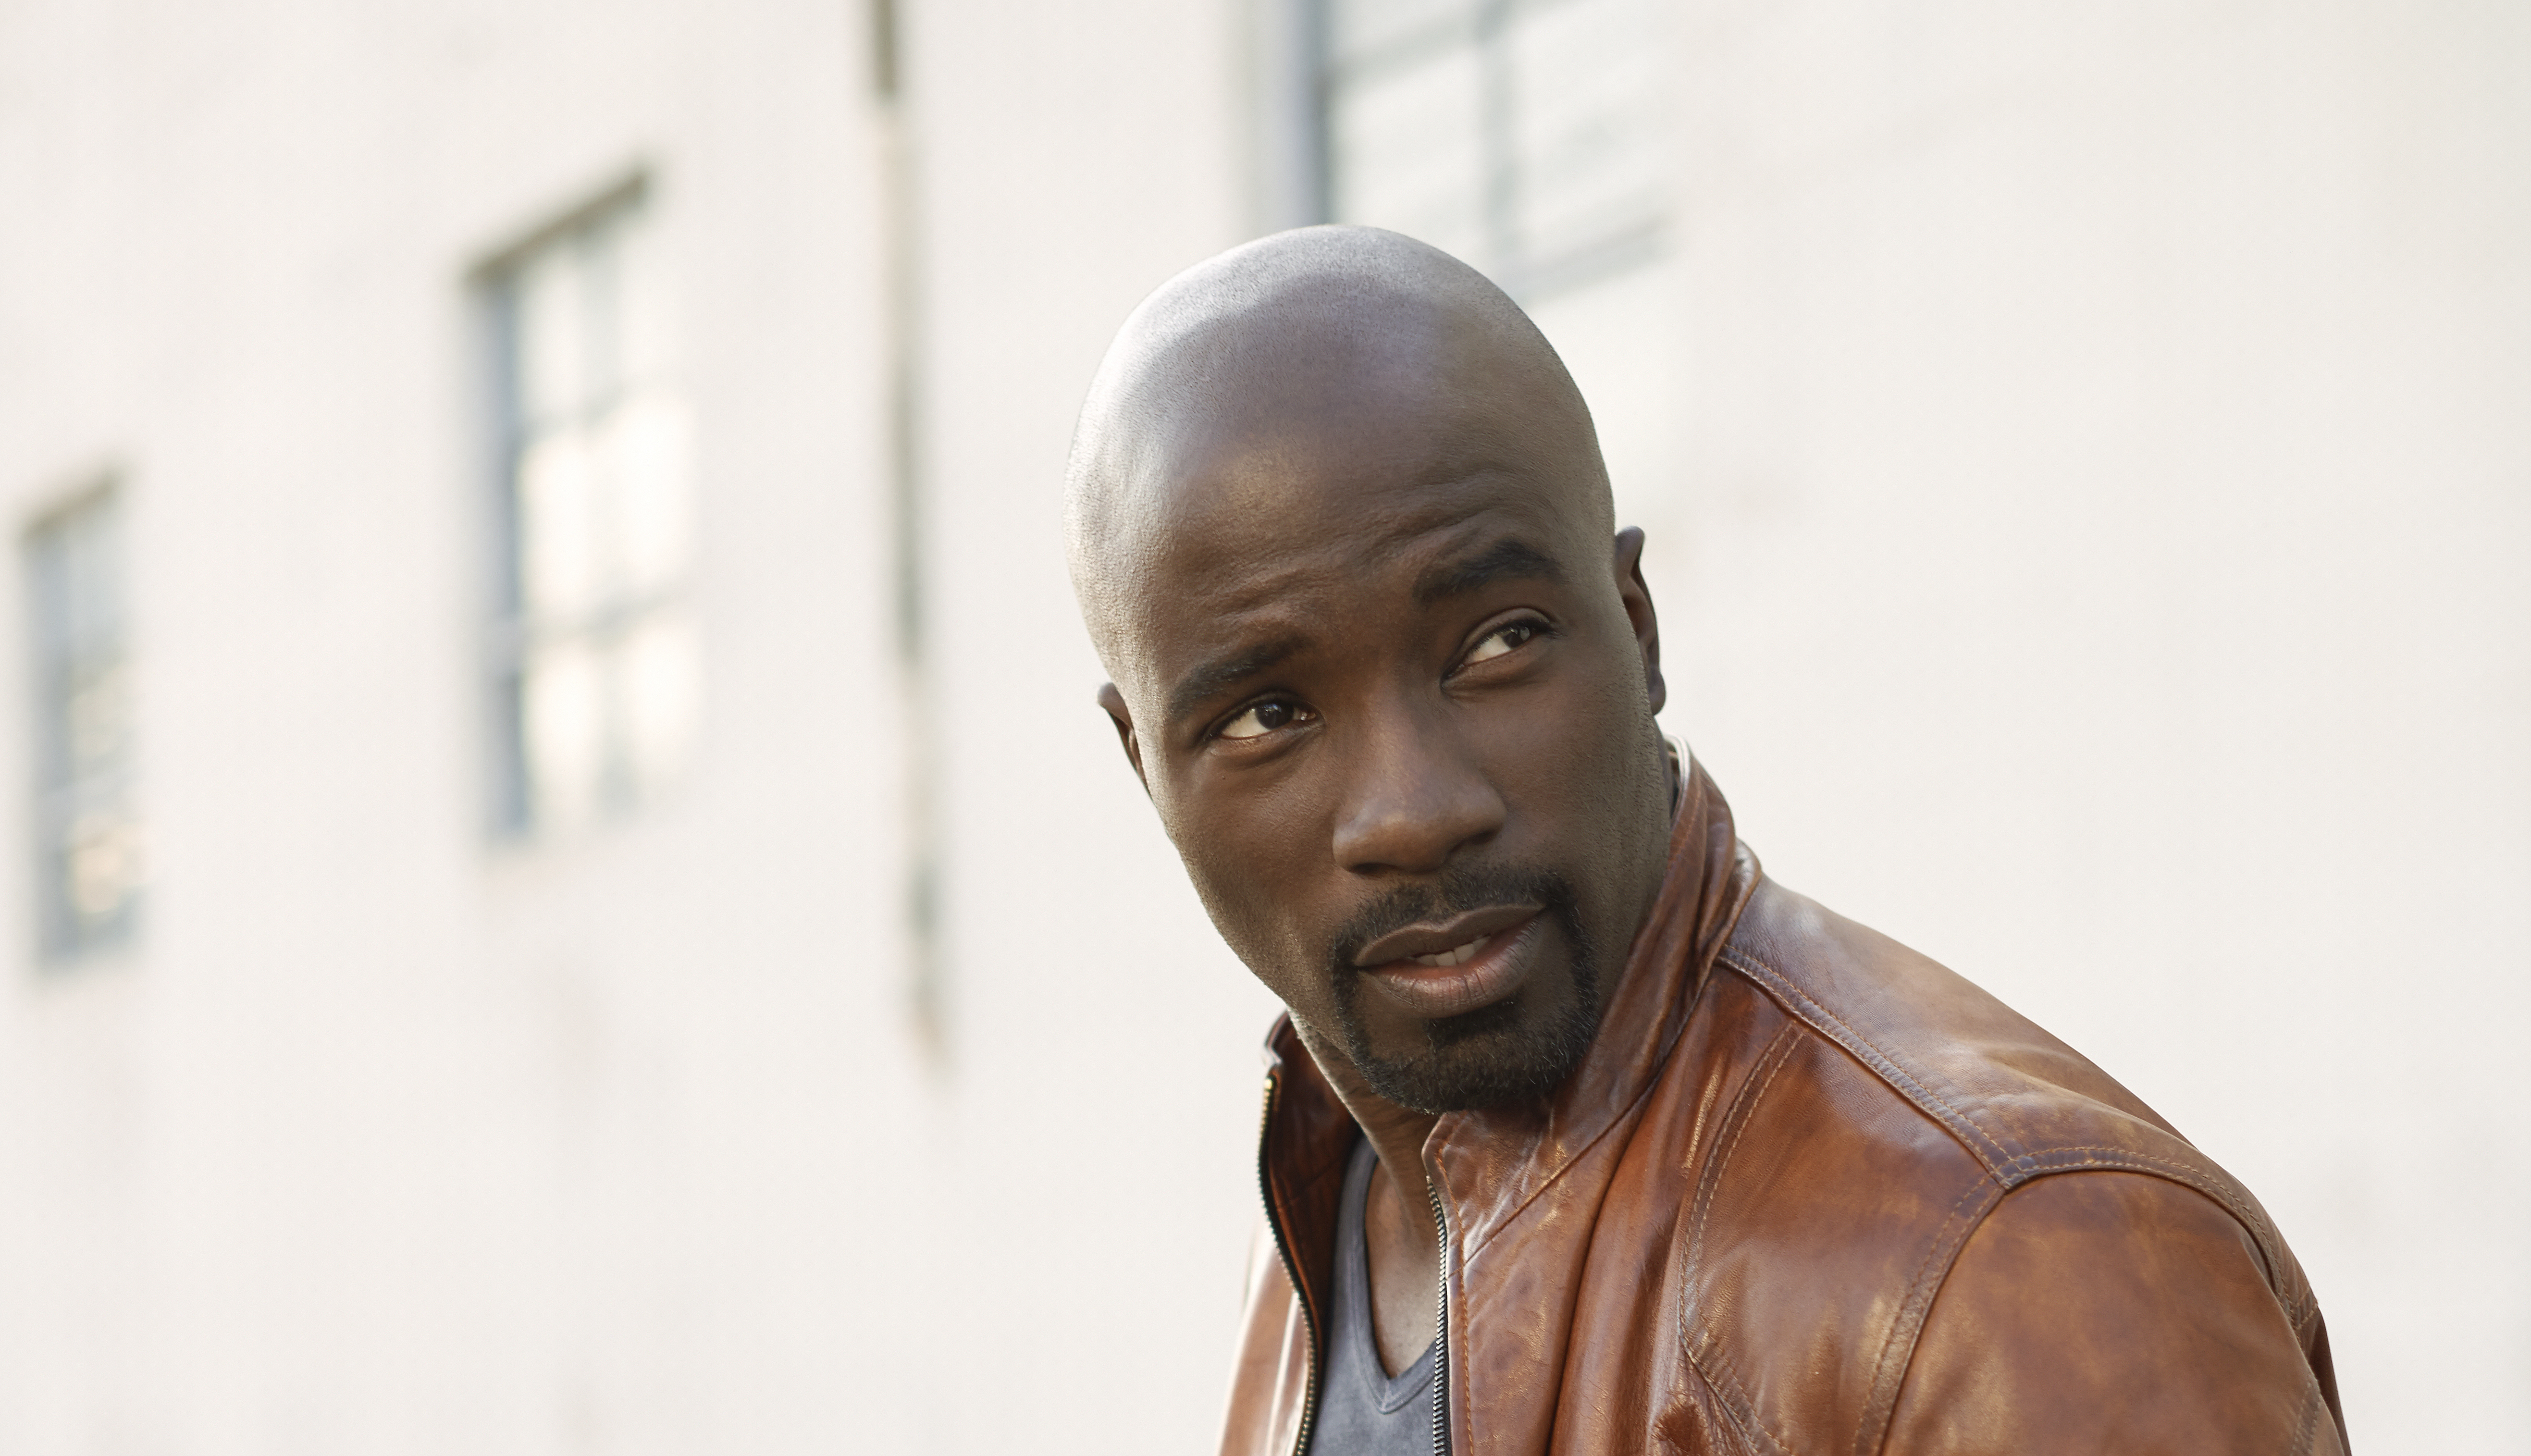 Luke Cage High Definition Wallpapers